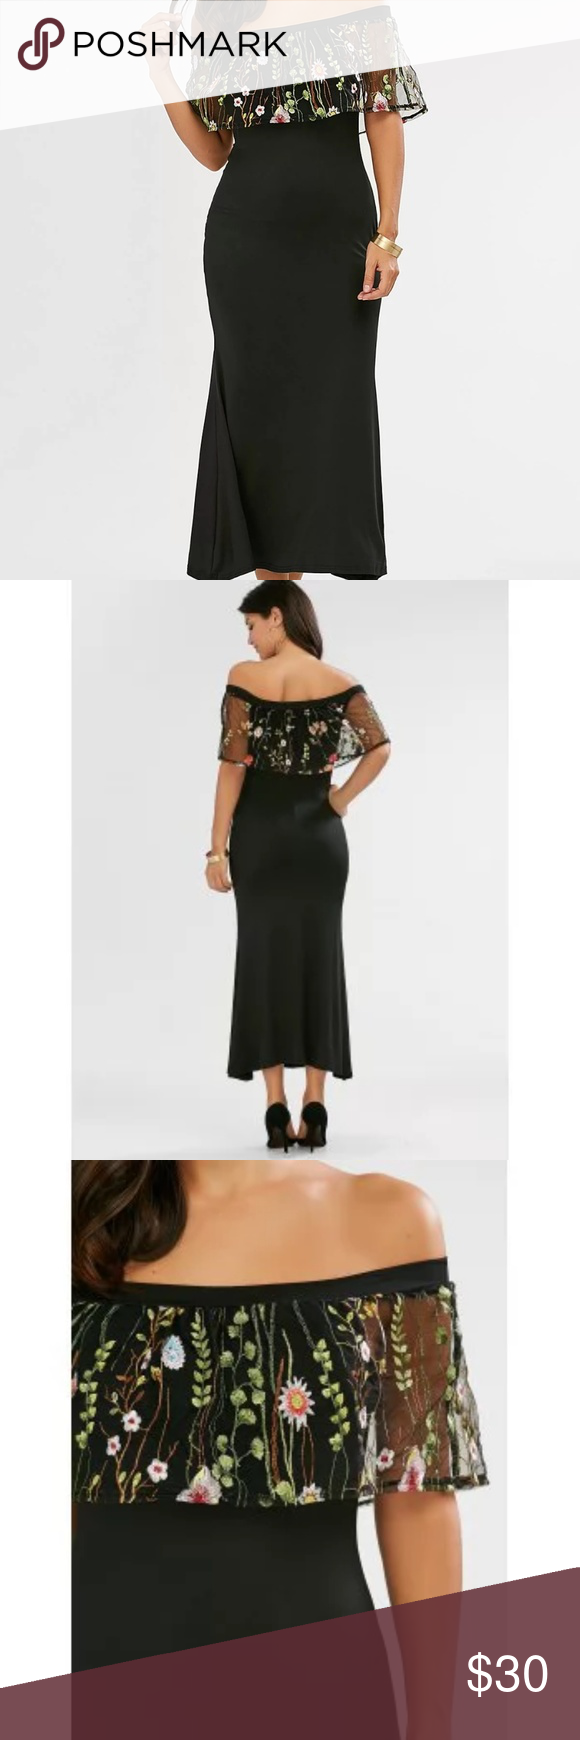 "Off shoulder embroidered maxi dress New. Ankle length. Cotton/polyester. Chest 32"" hips 36"". Dresses"